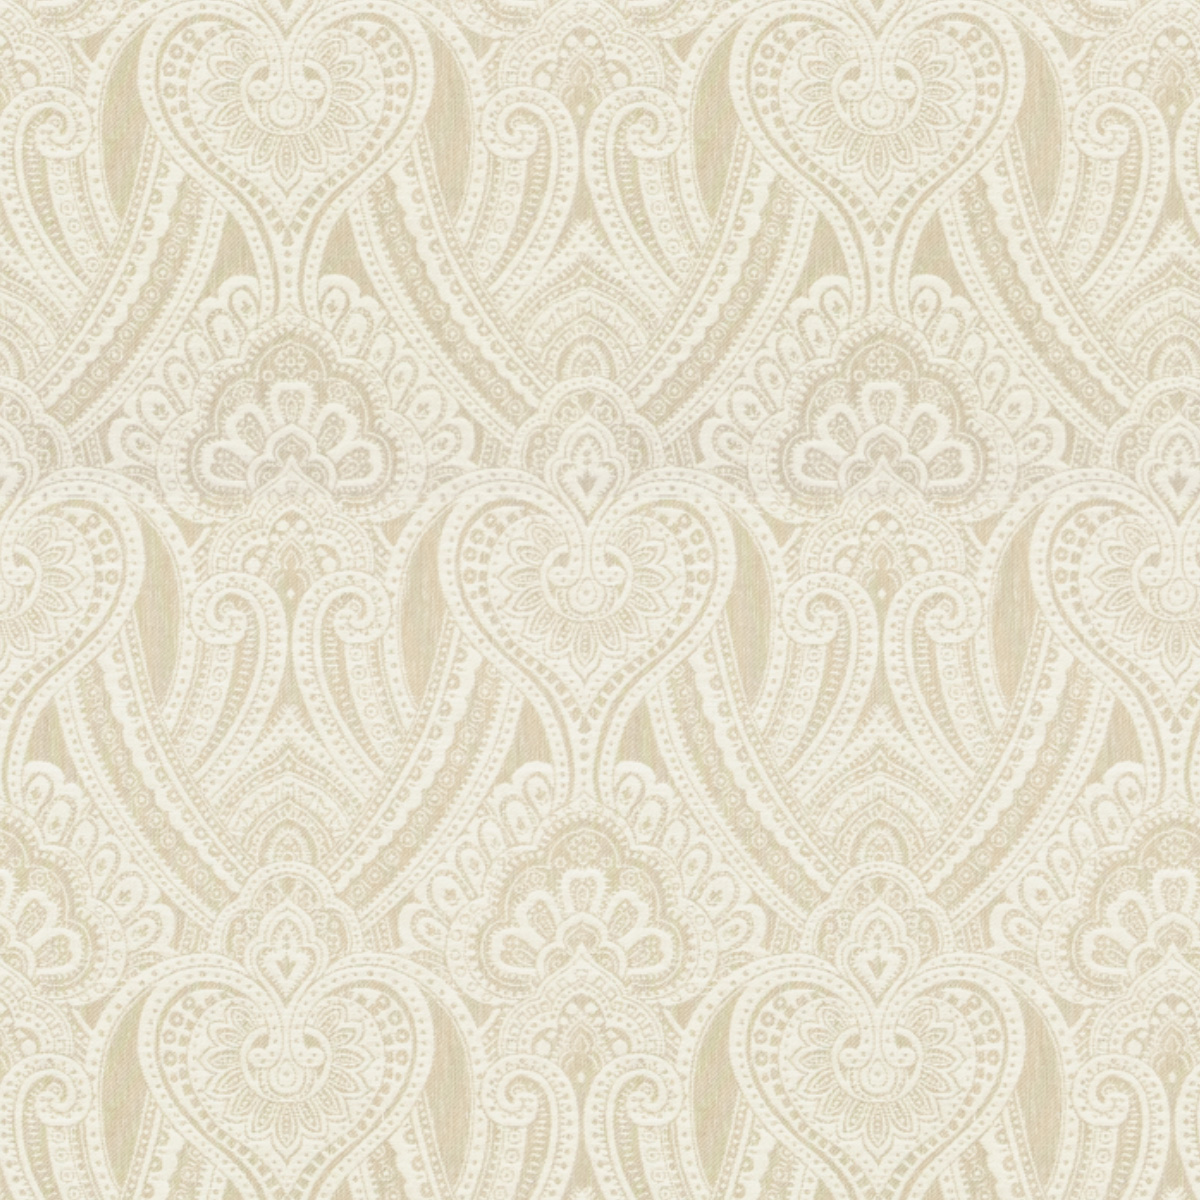 Bontemps 1 Beige